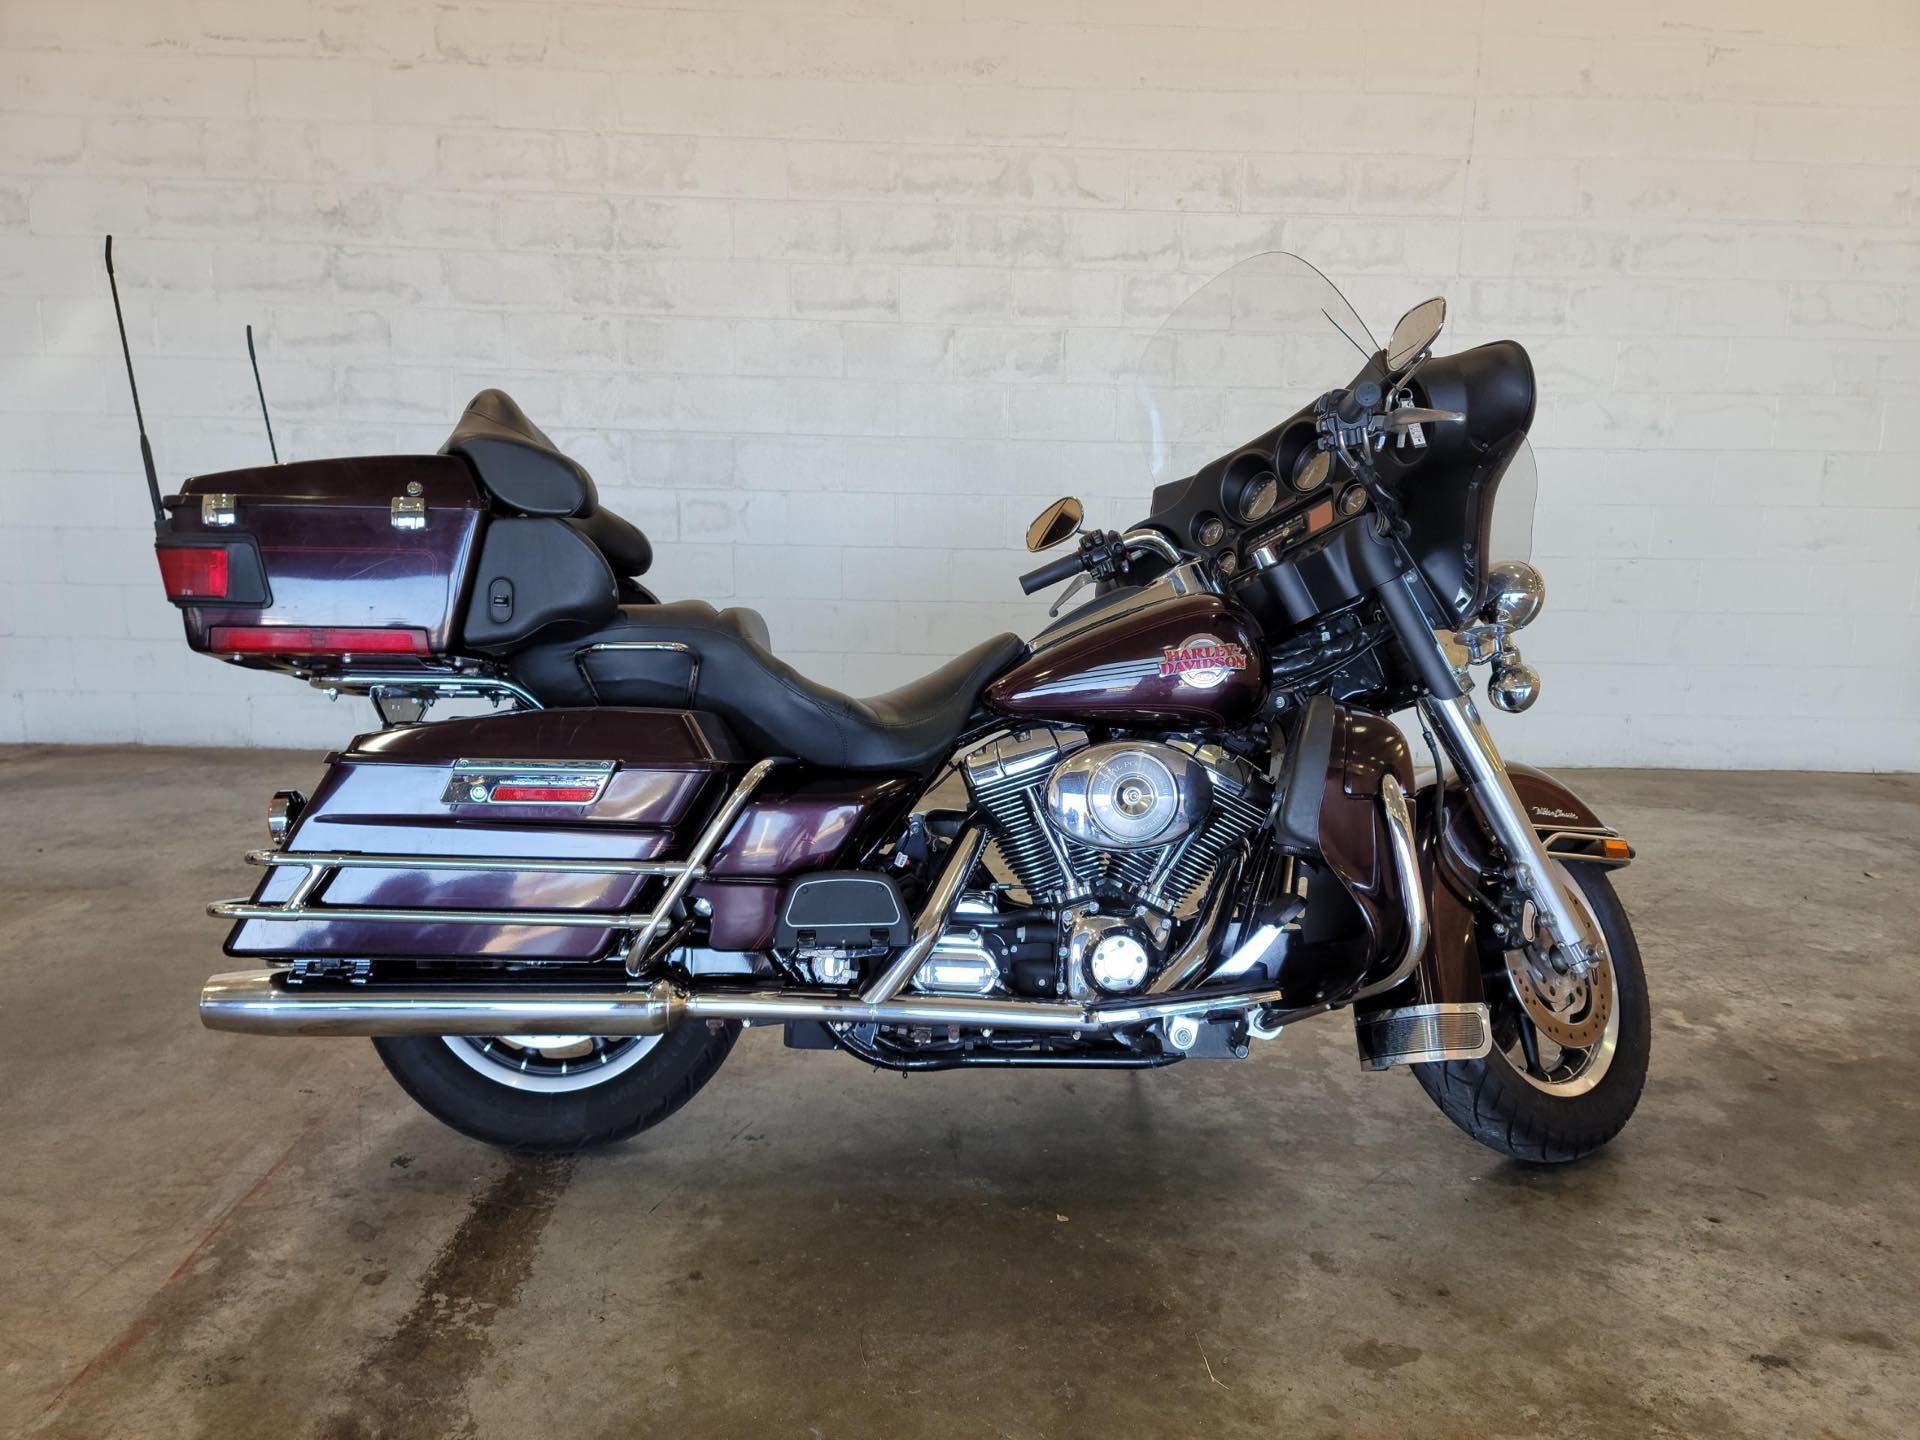 2005 Harley-Davidson Electra Glide Ultra Classic at Twisted Cycles